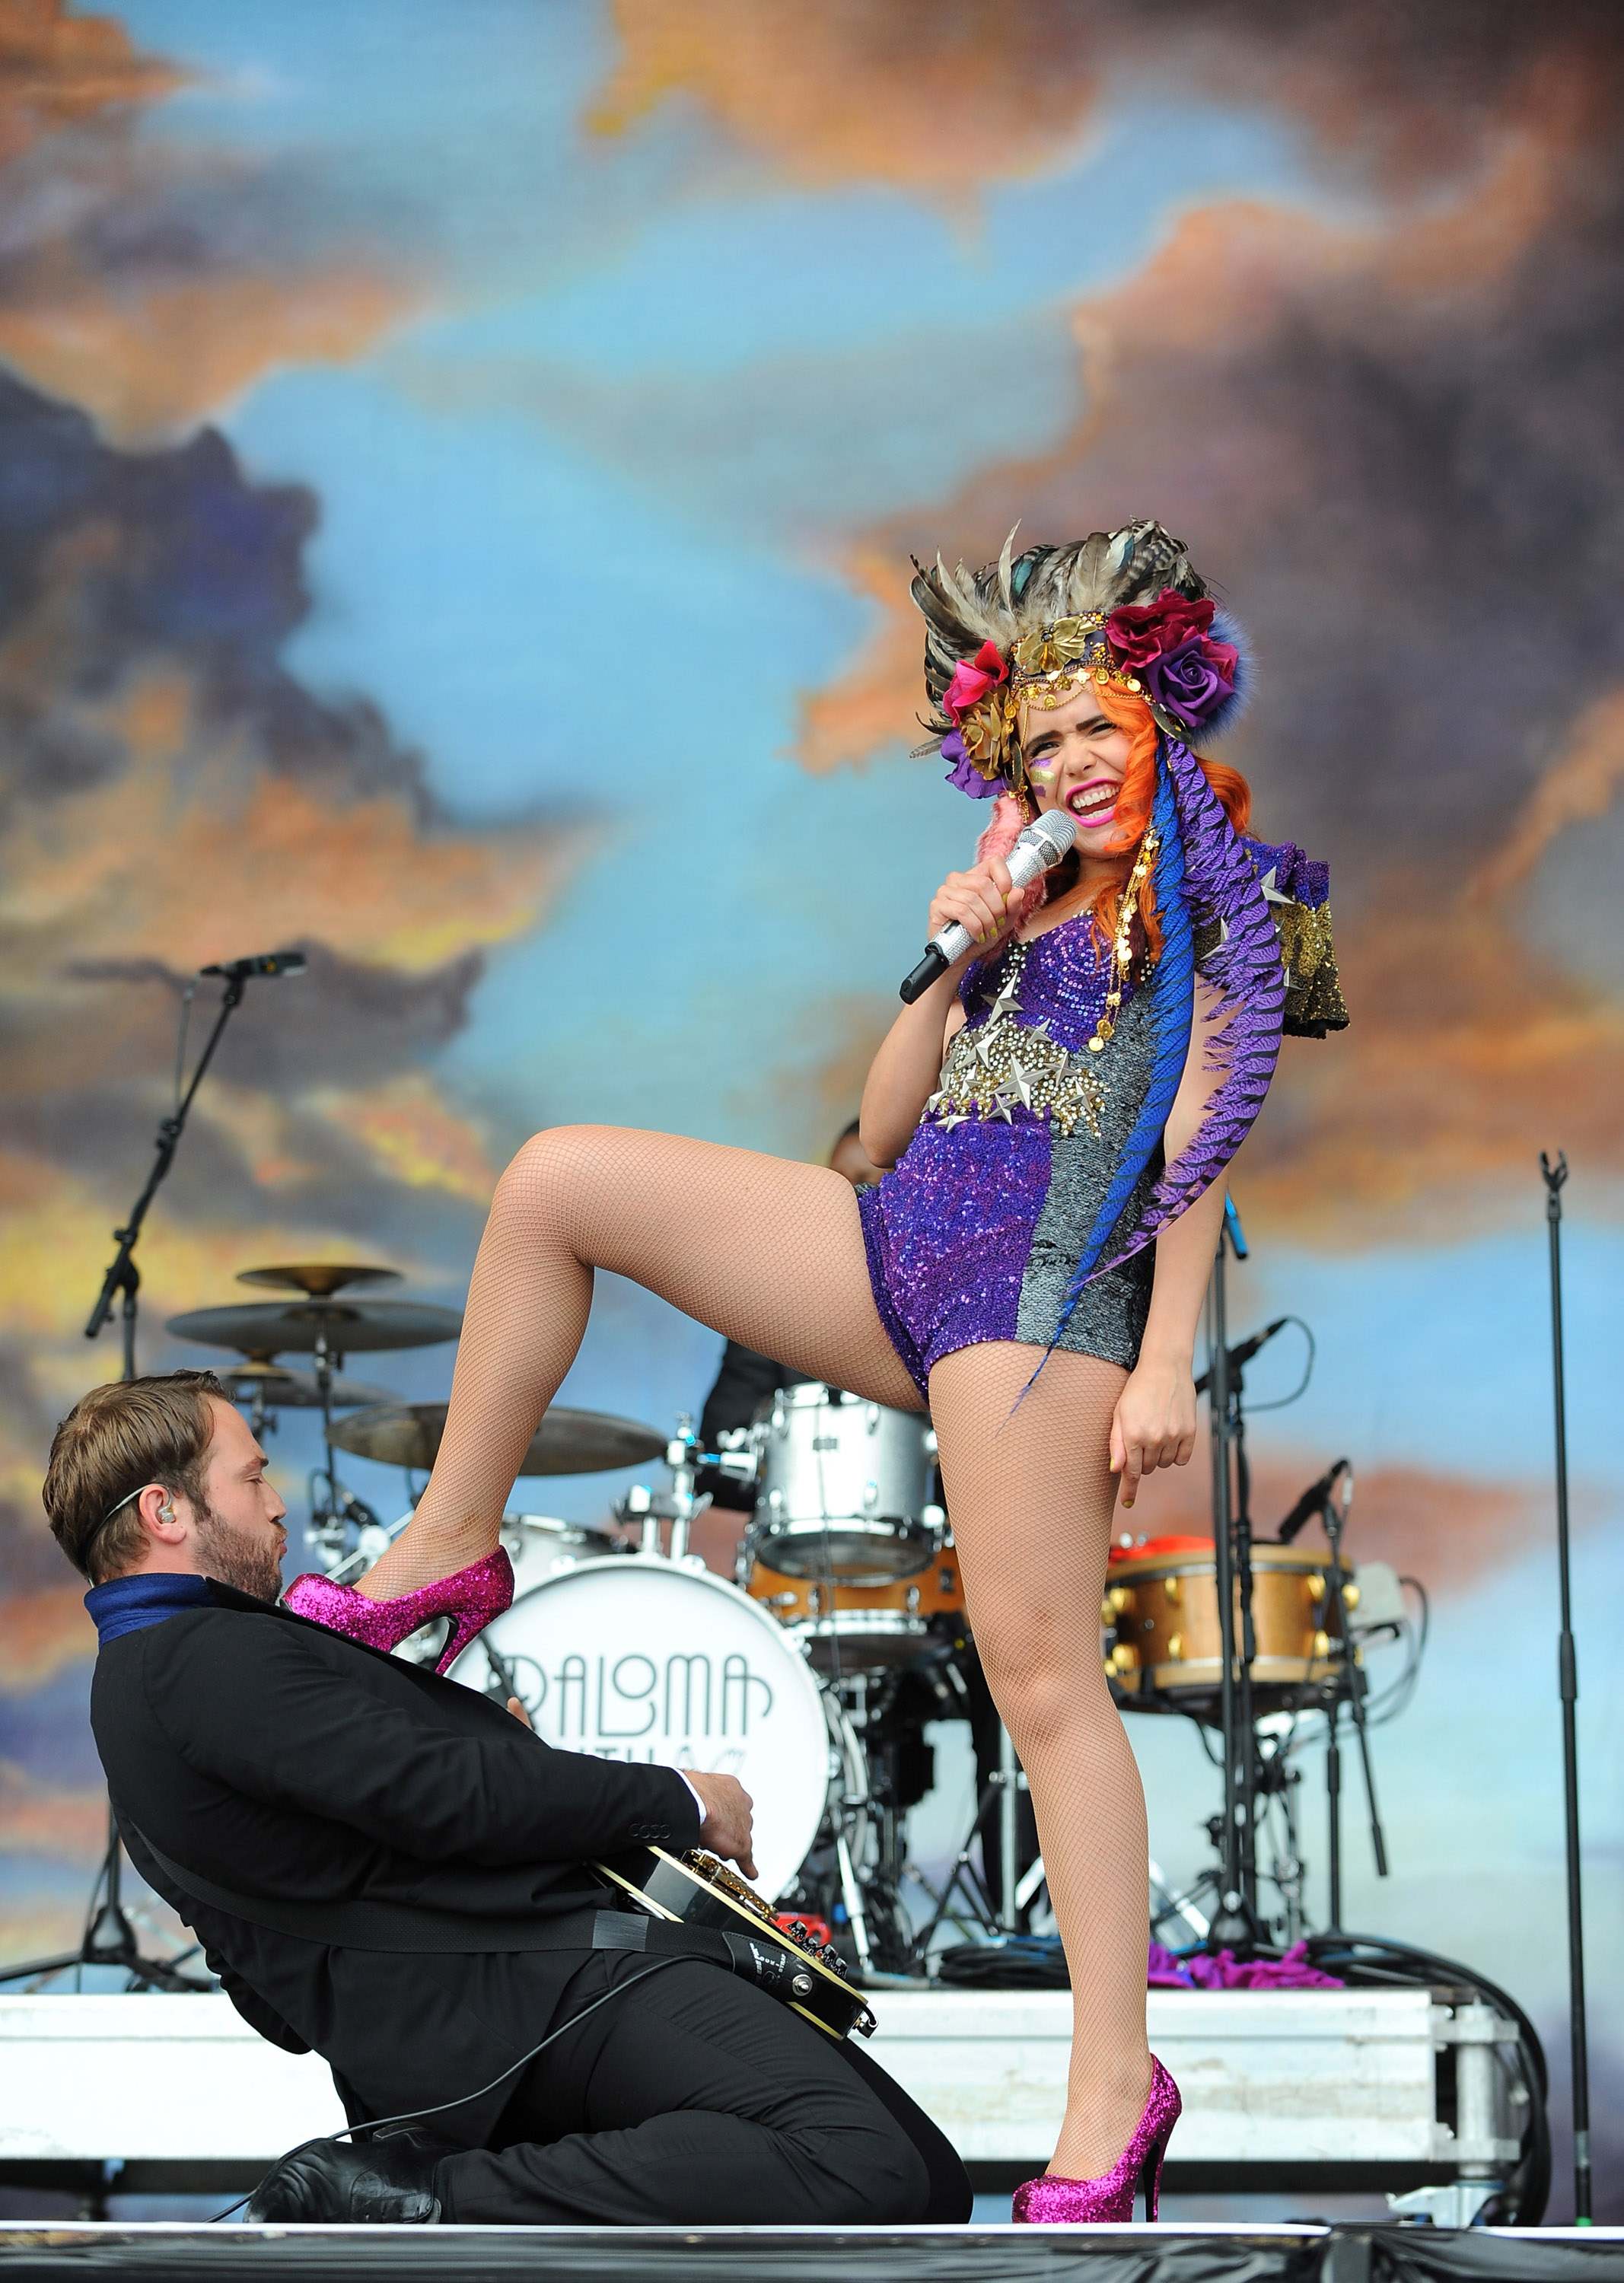 Paloma Faith Performing At The NPG Music And Arts Festival Copyright NPG Records 2011